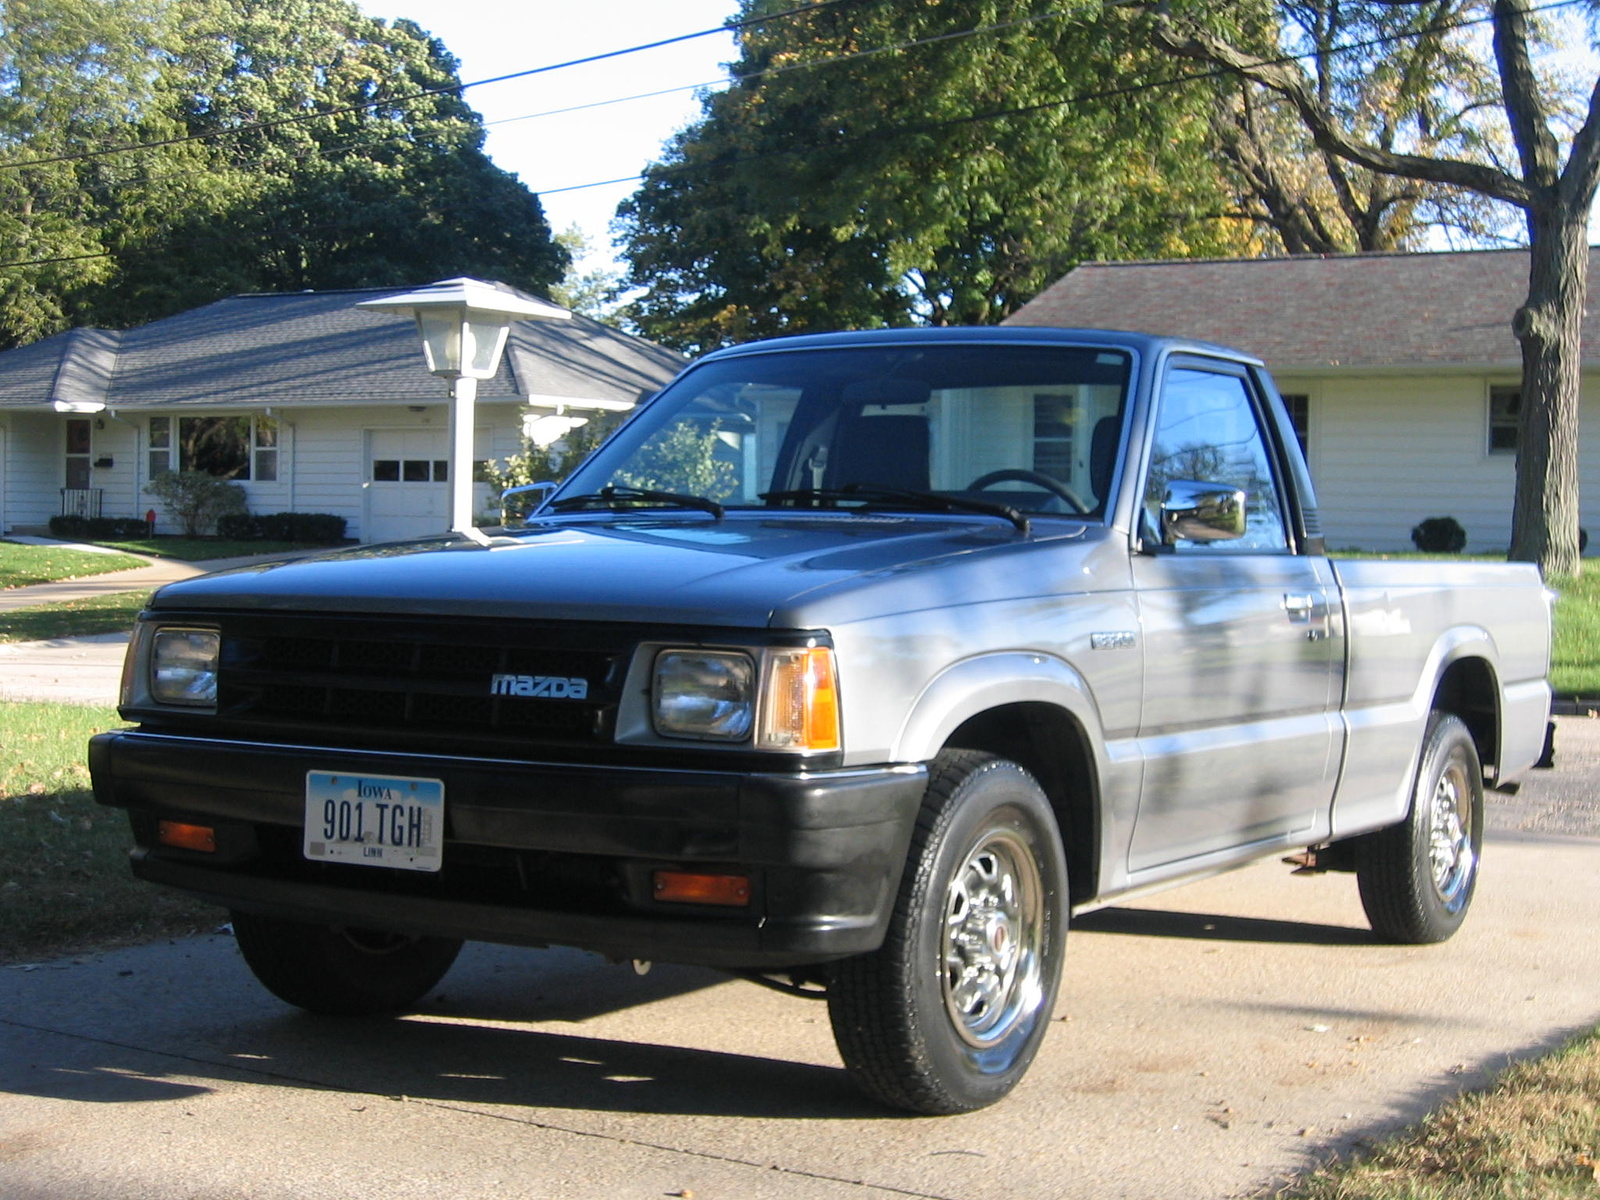 1992 Mazda B-Series Pickup - Pictures - 1992 Mazda B-Series Pickup 2 ...